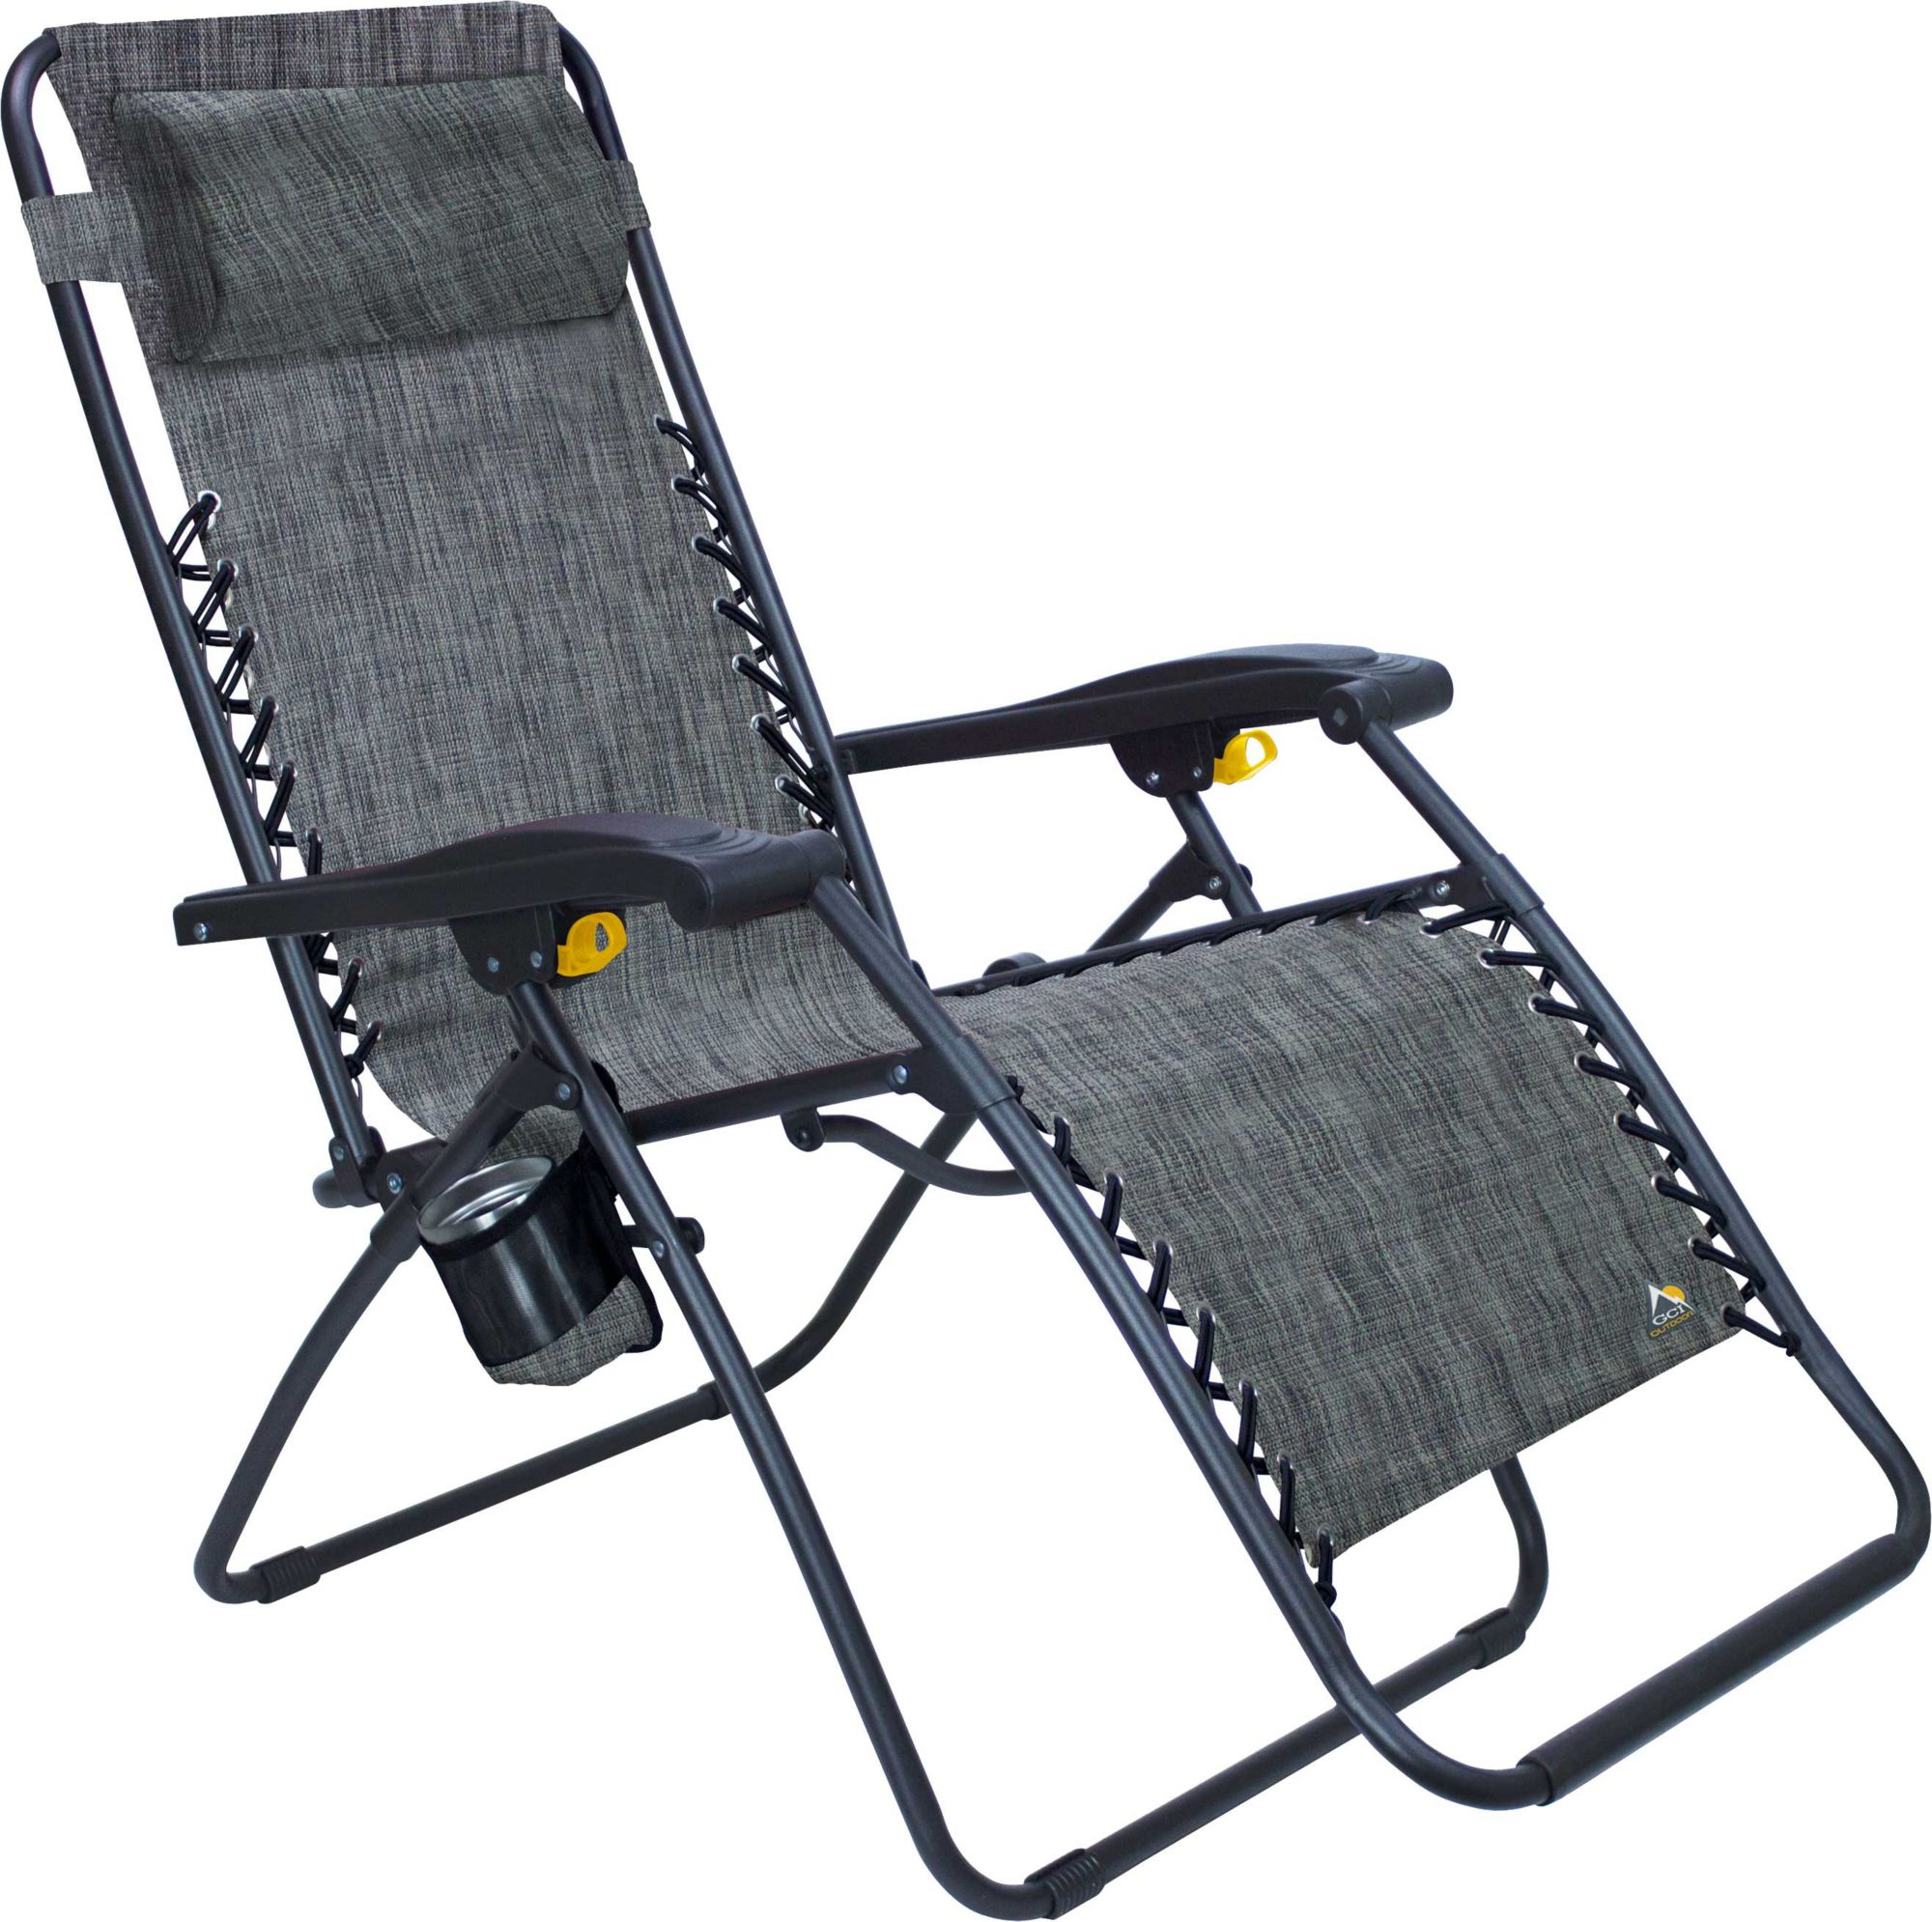 gci outdoor zero gravity chair | dick's sporting goods